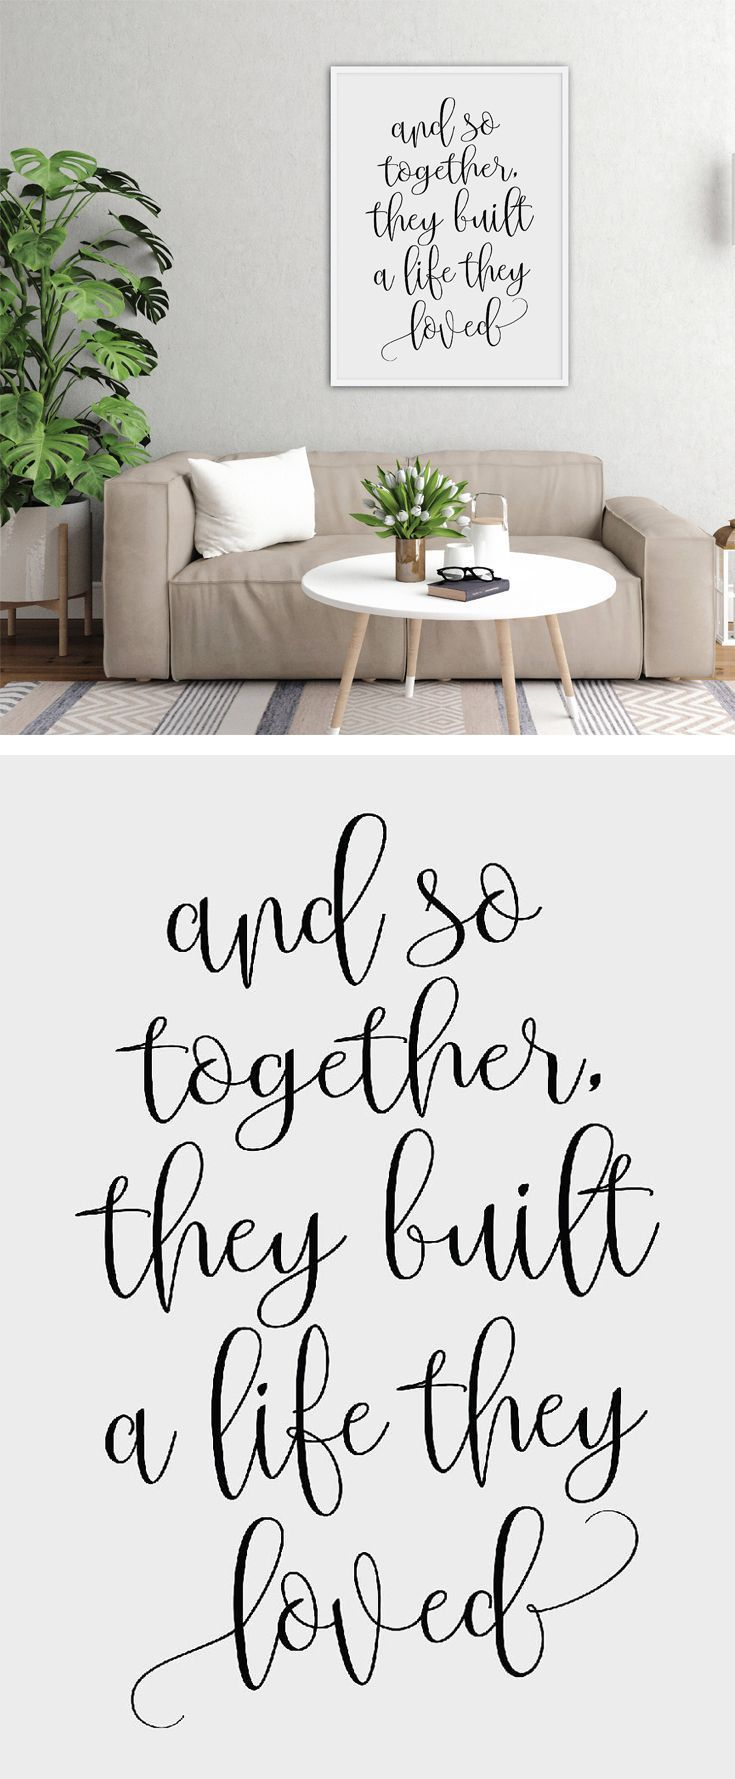 What A Sweet Saying This Printable Typography Art Would Make A